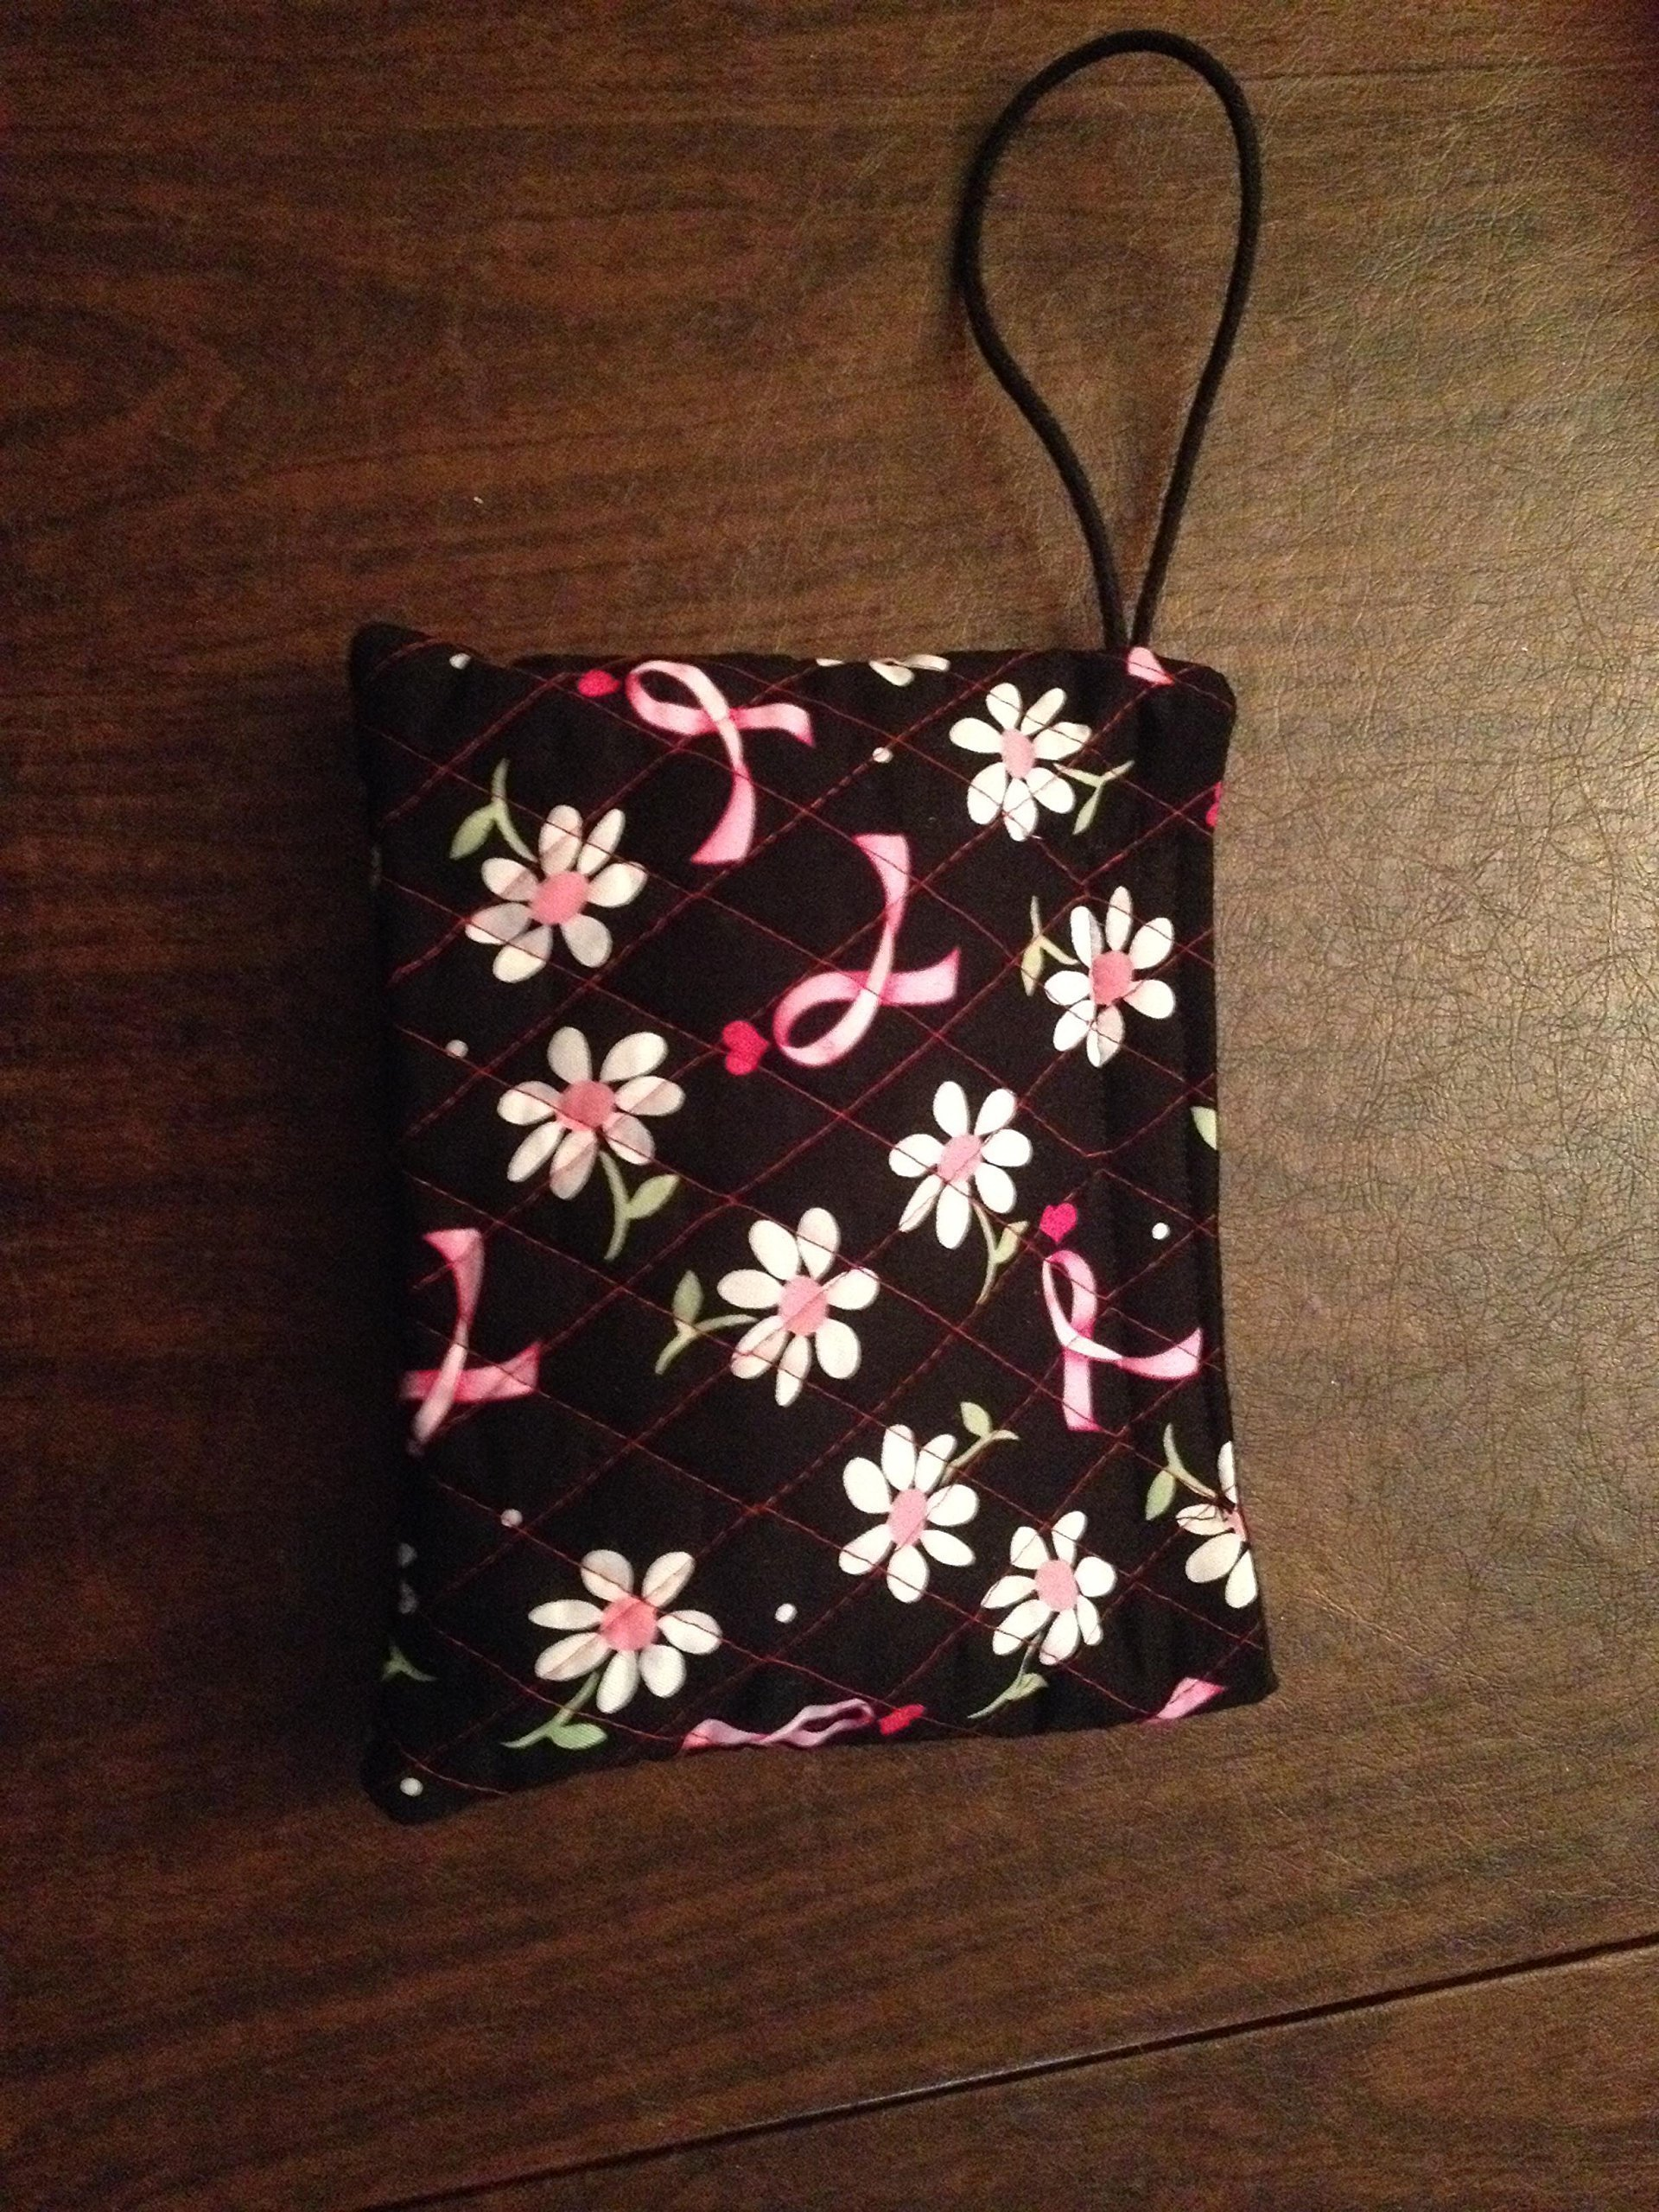 Wristlet Wallet Bag Purse Breast Cancer Awareness Ribbon Quilted by Middle Sister Styles, LLC